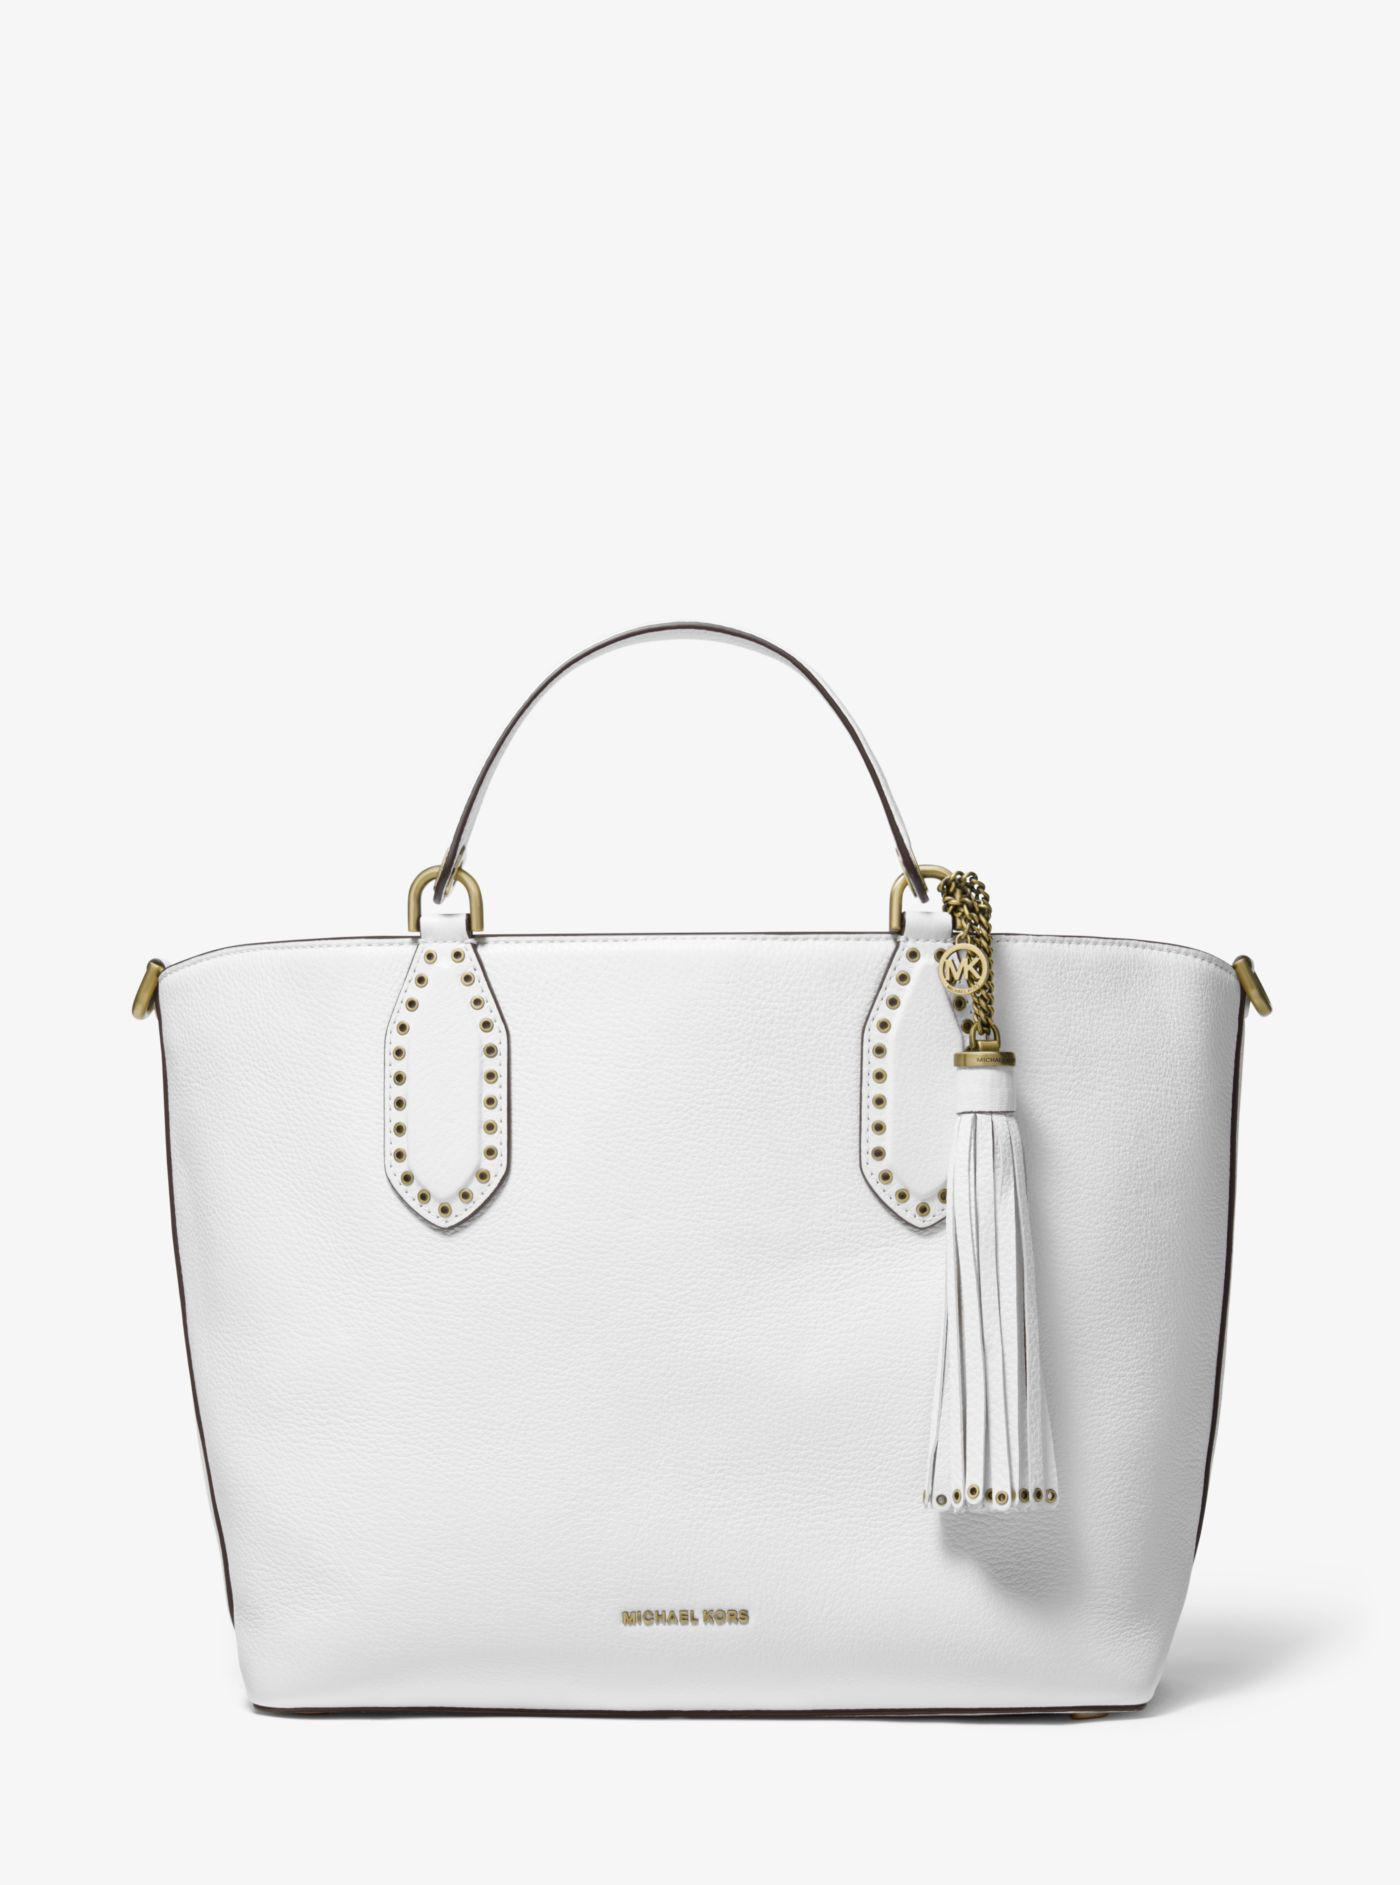 80e06f1b2c9b Michael Kors Brooklyn Large Pebbled Leather Satchel in White - Lyst